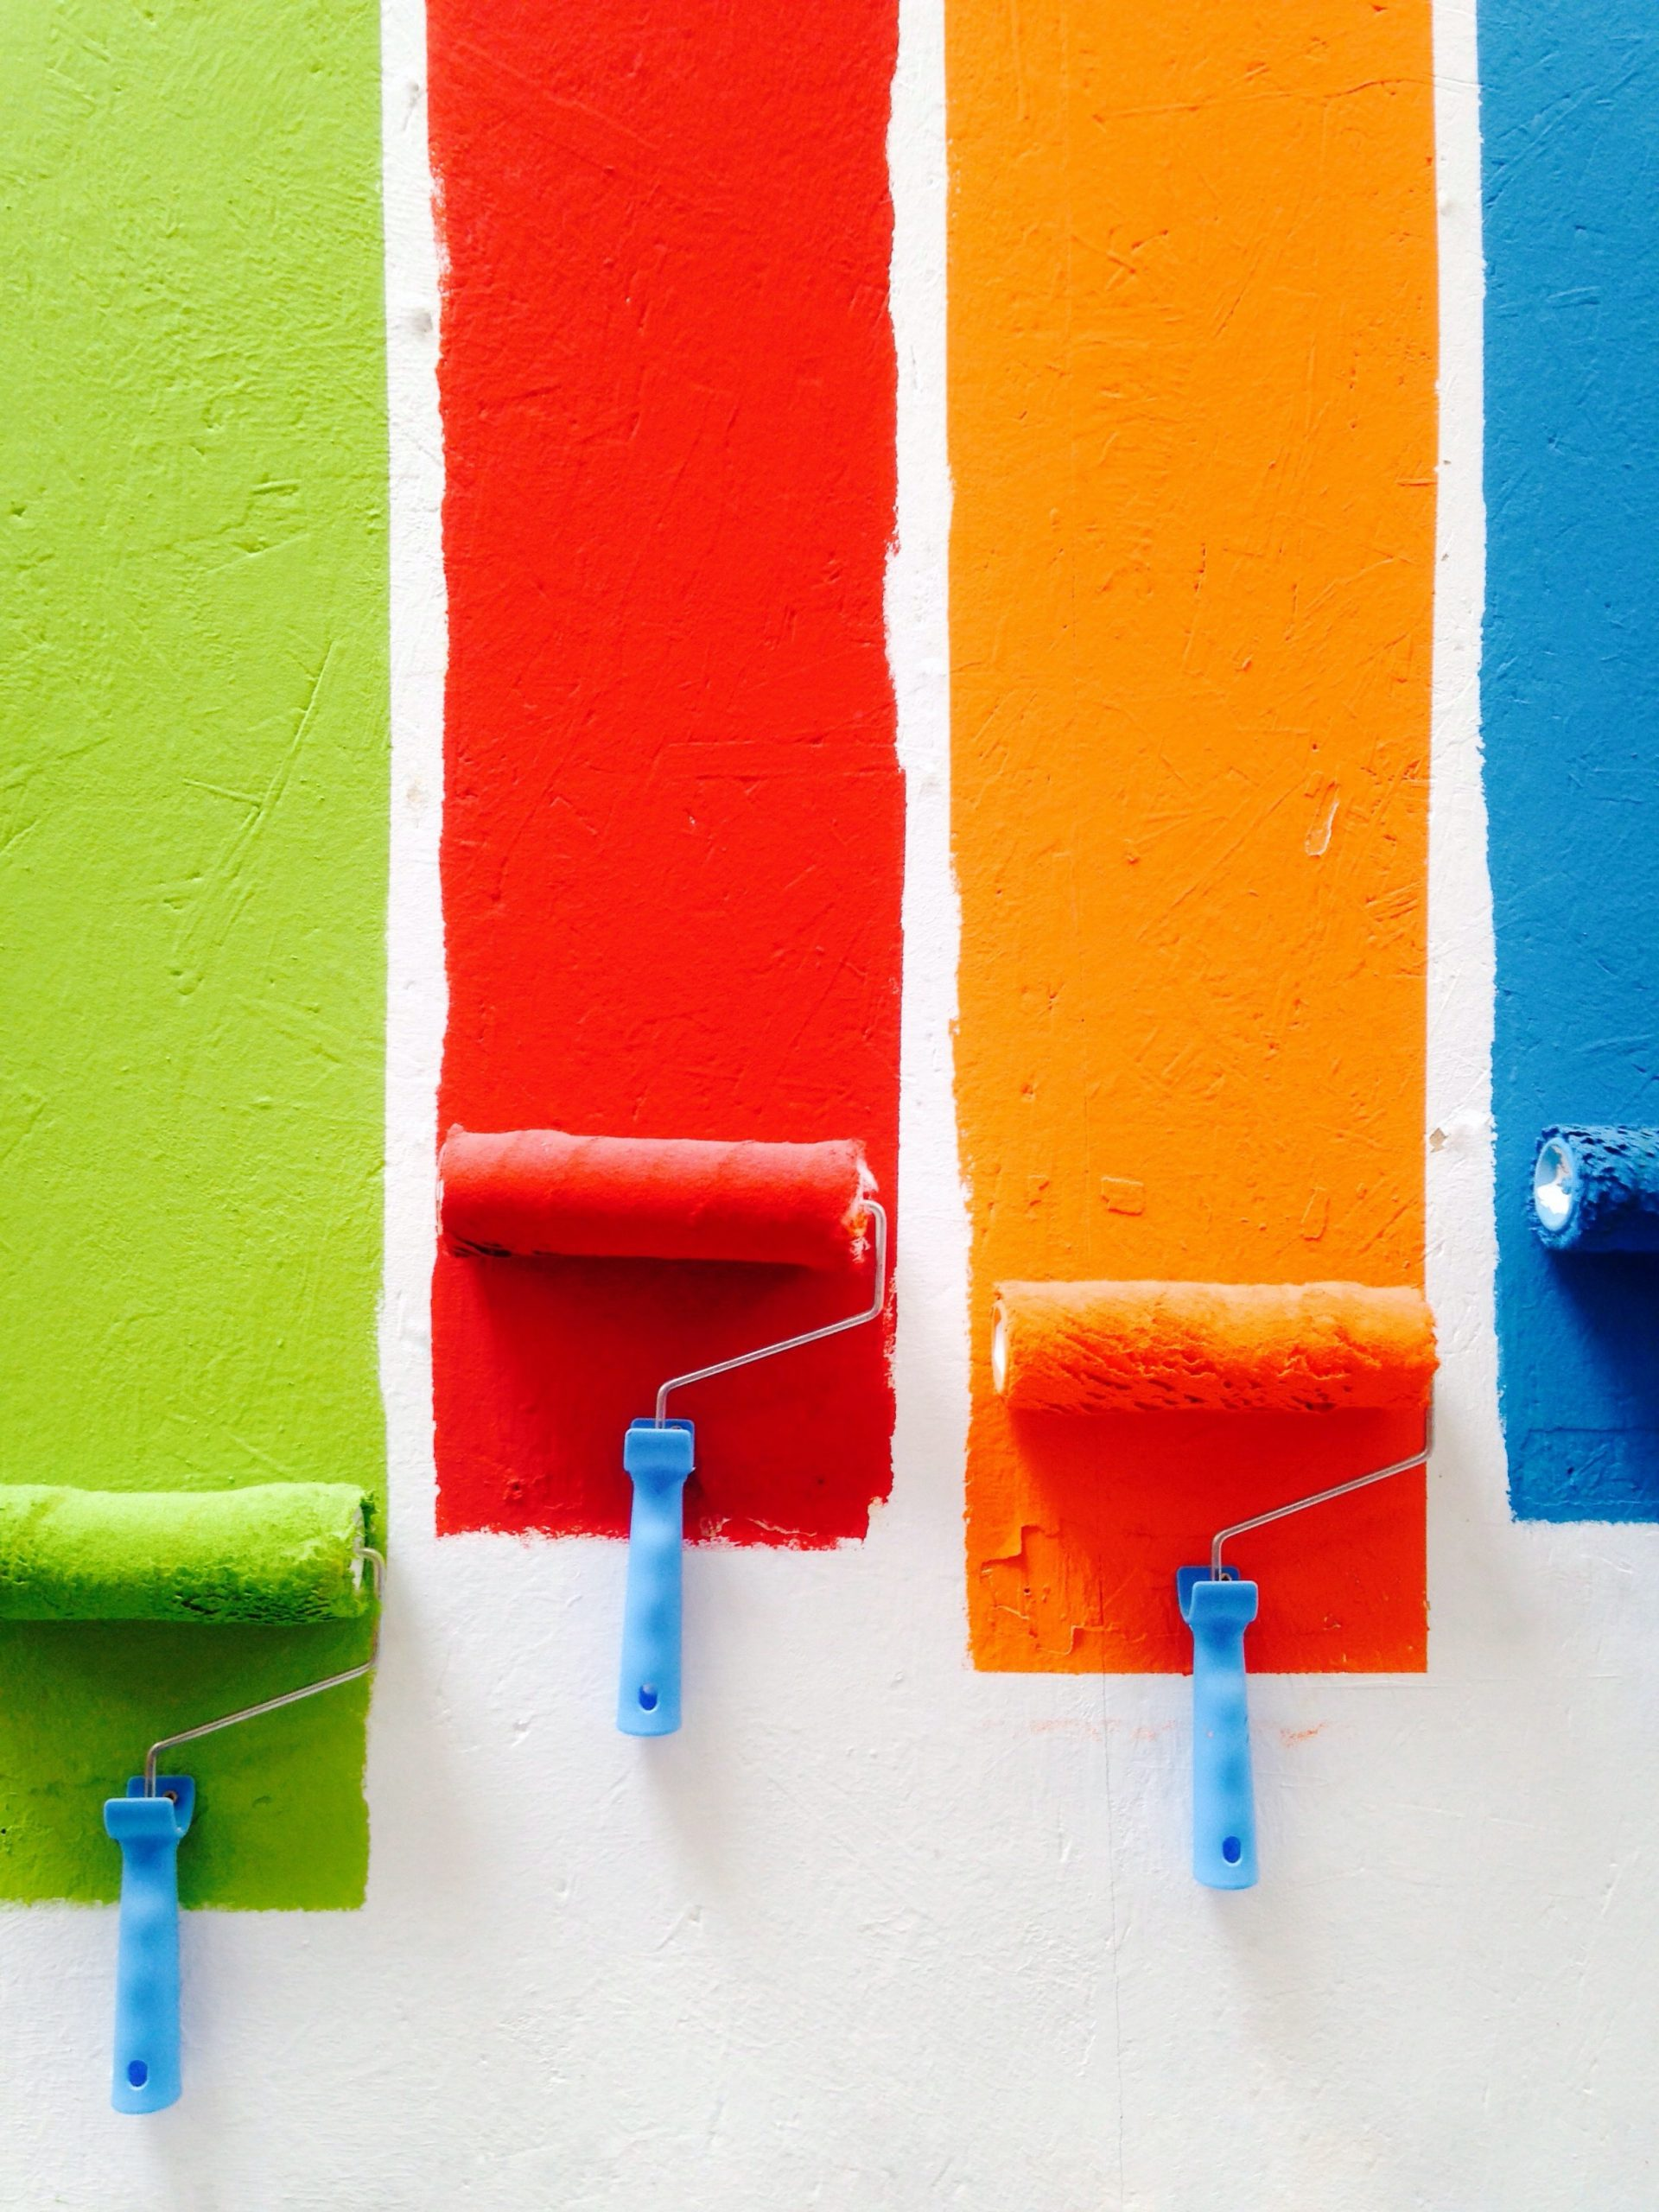 Four paint rollers applying paint to a white wall